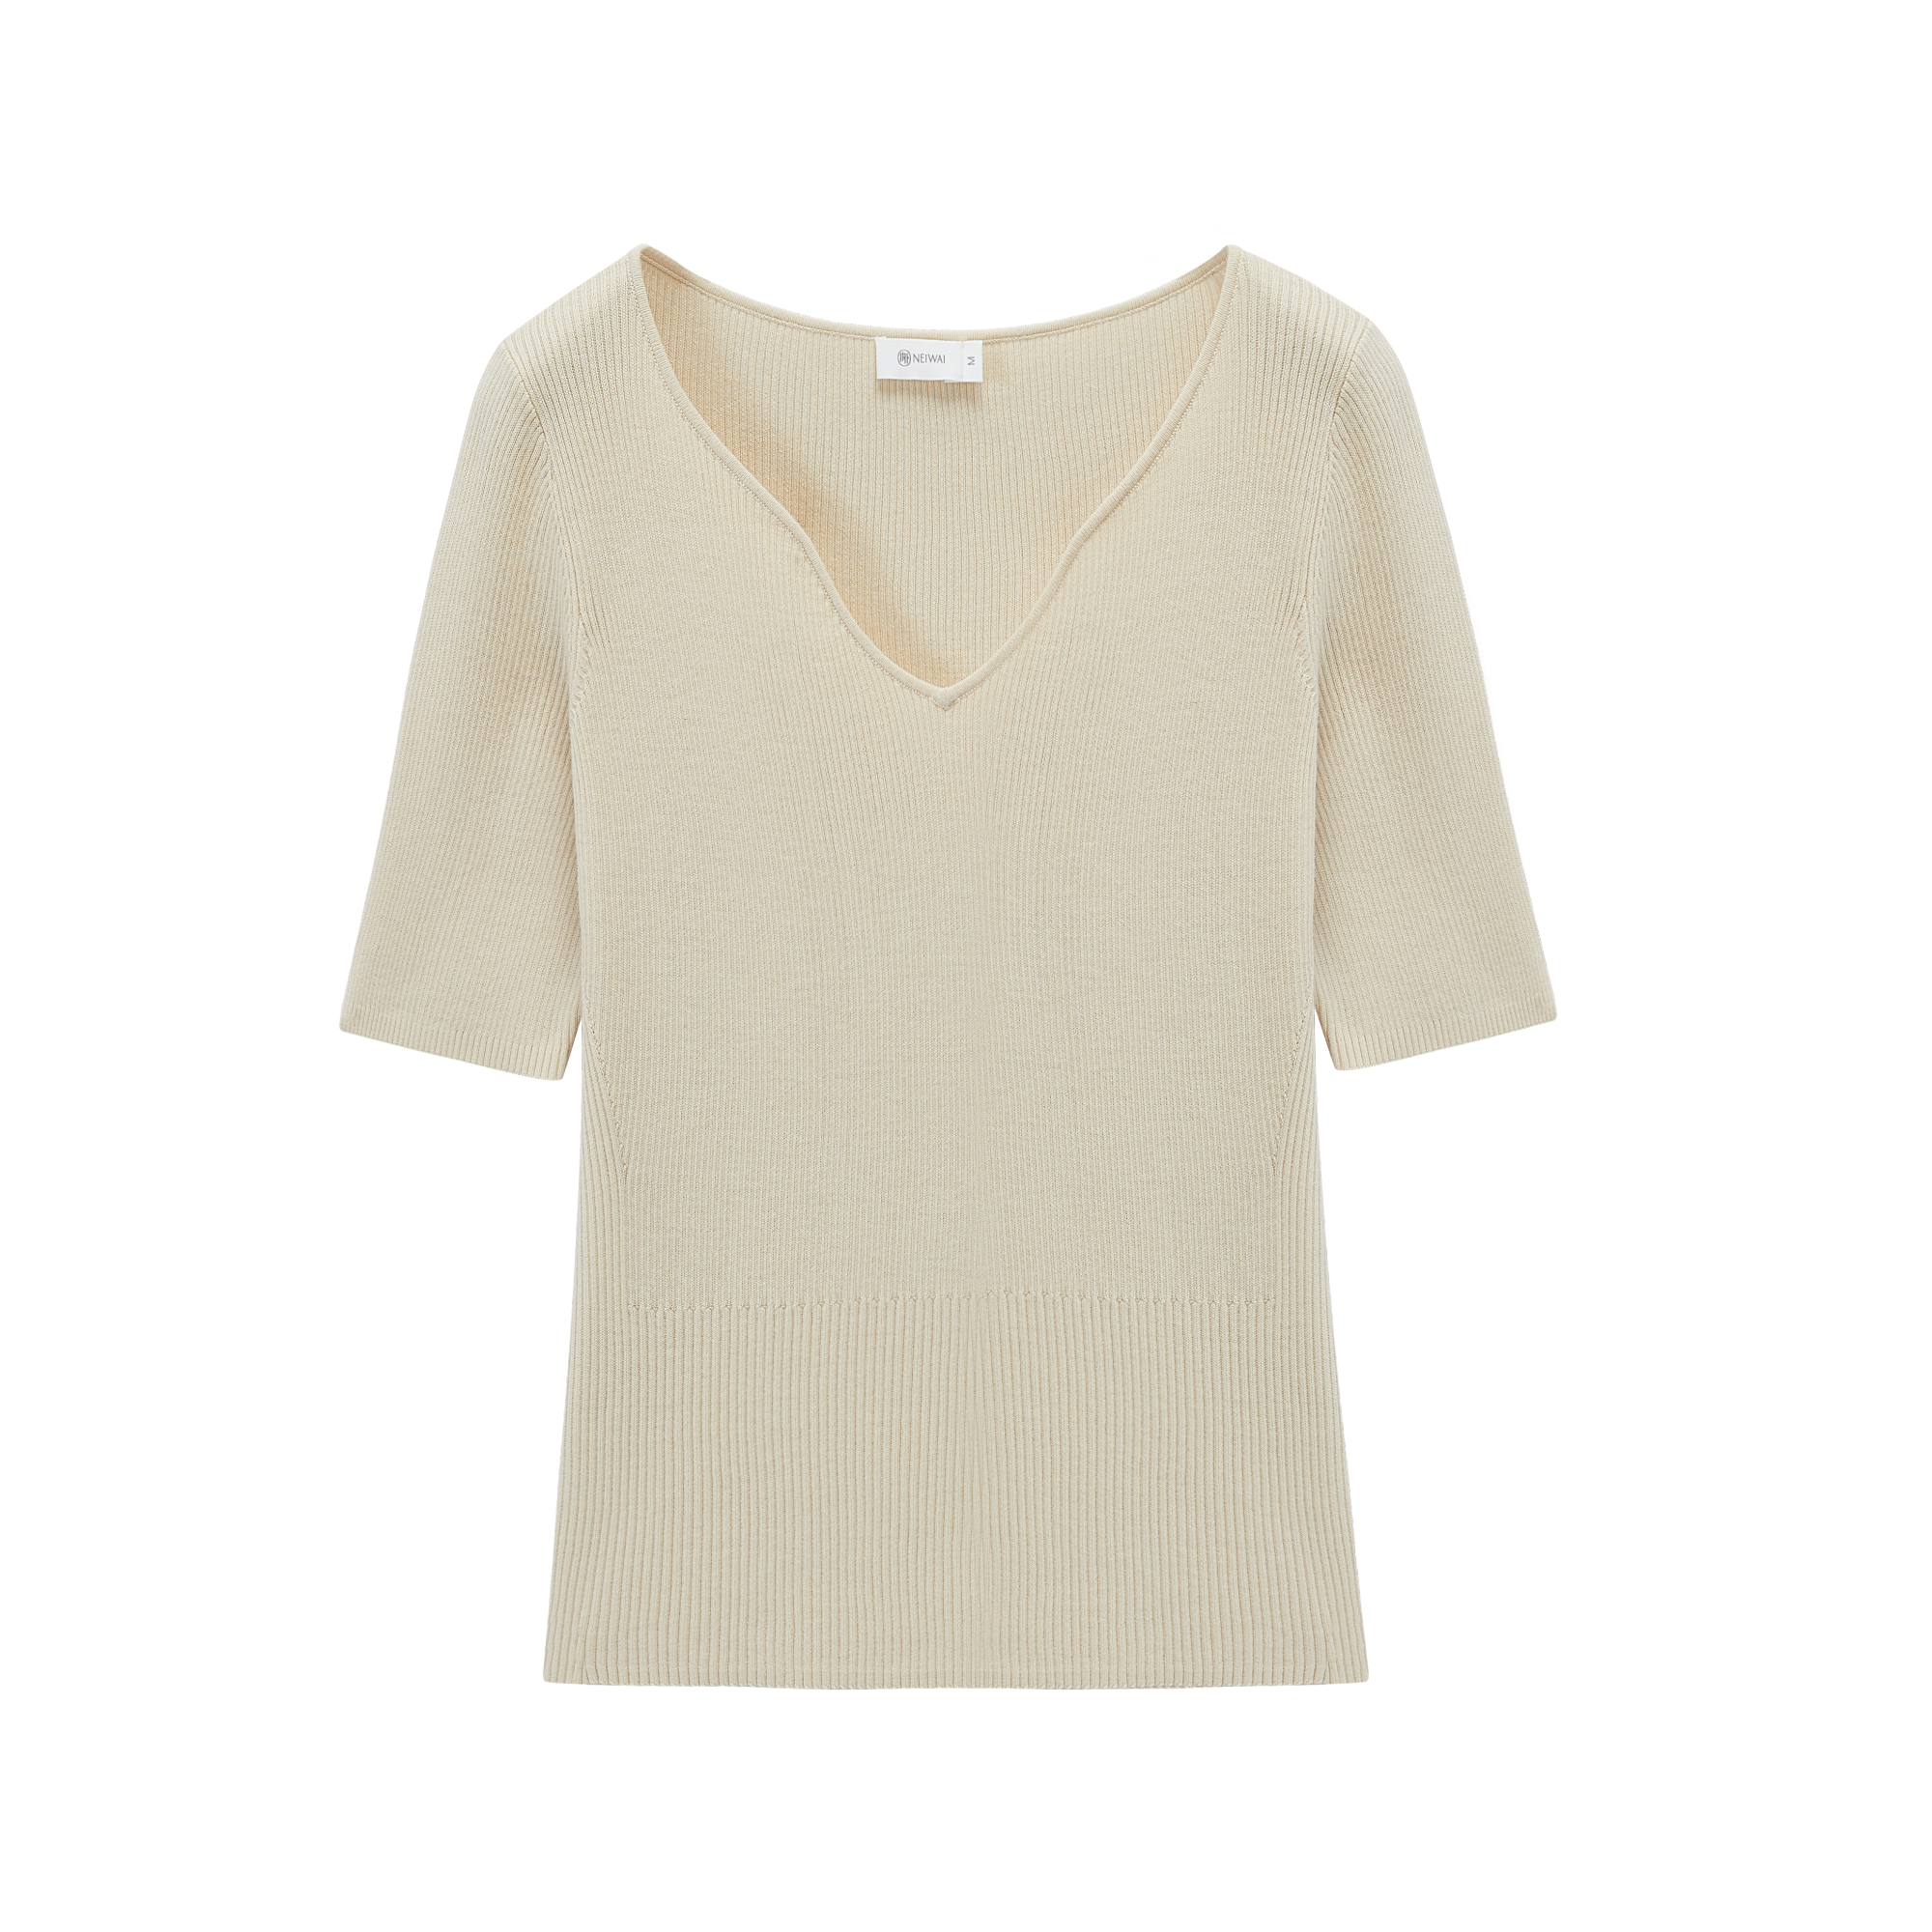 NEIWAI's Pure Simplicity Silk Blend V-neck Short Sleeve Top in Sand Dollar.